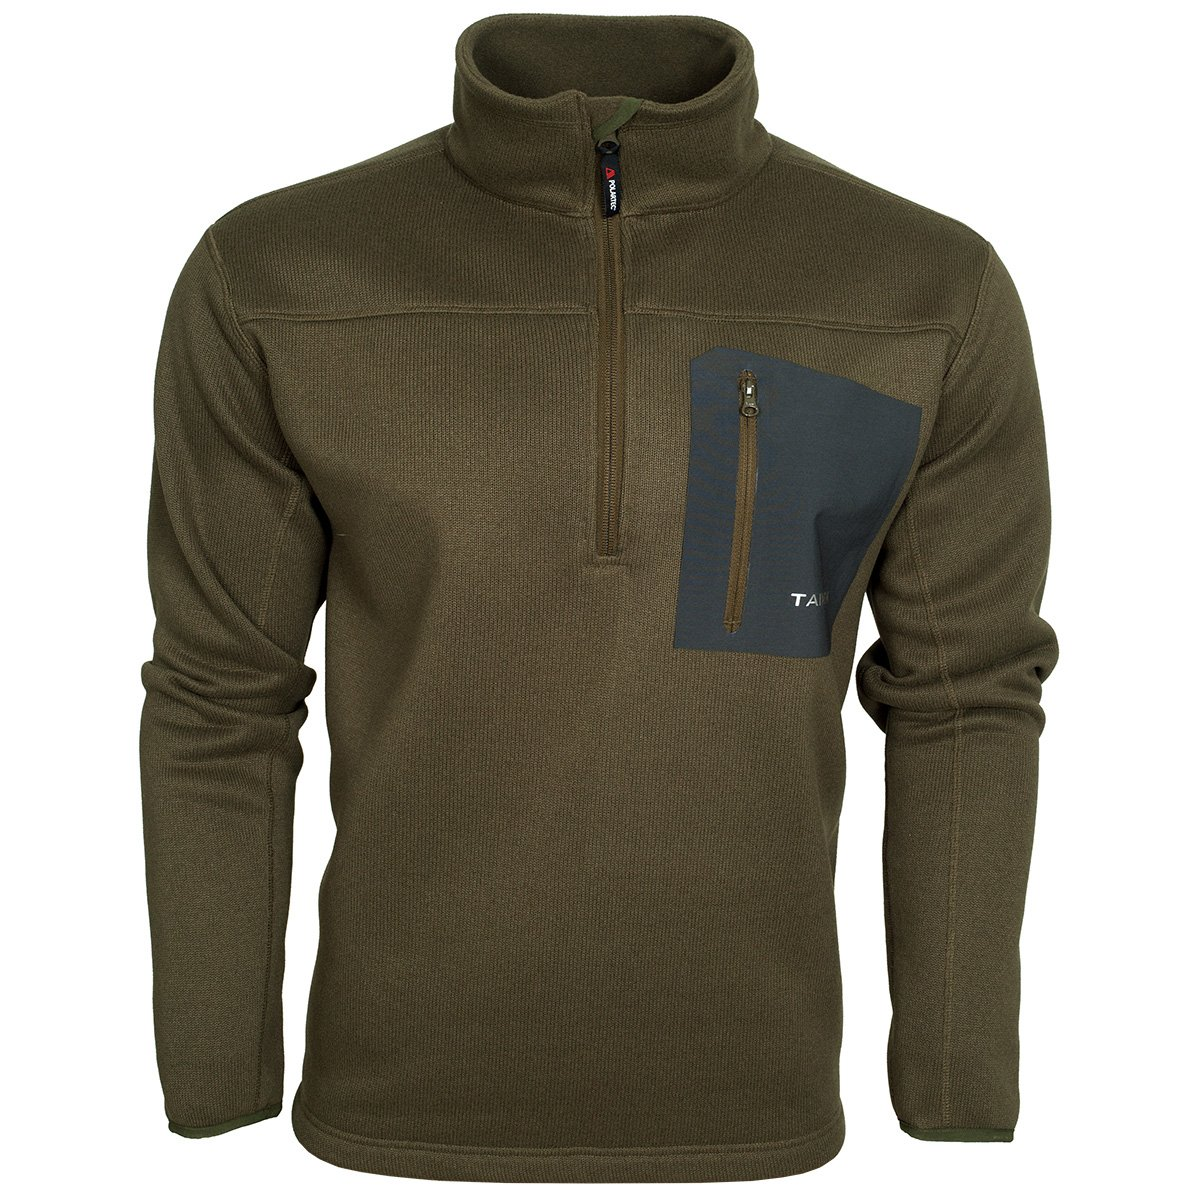 Taimen Polartec Thermal Pro Half Zip Sweater